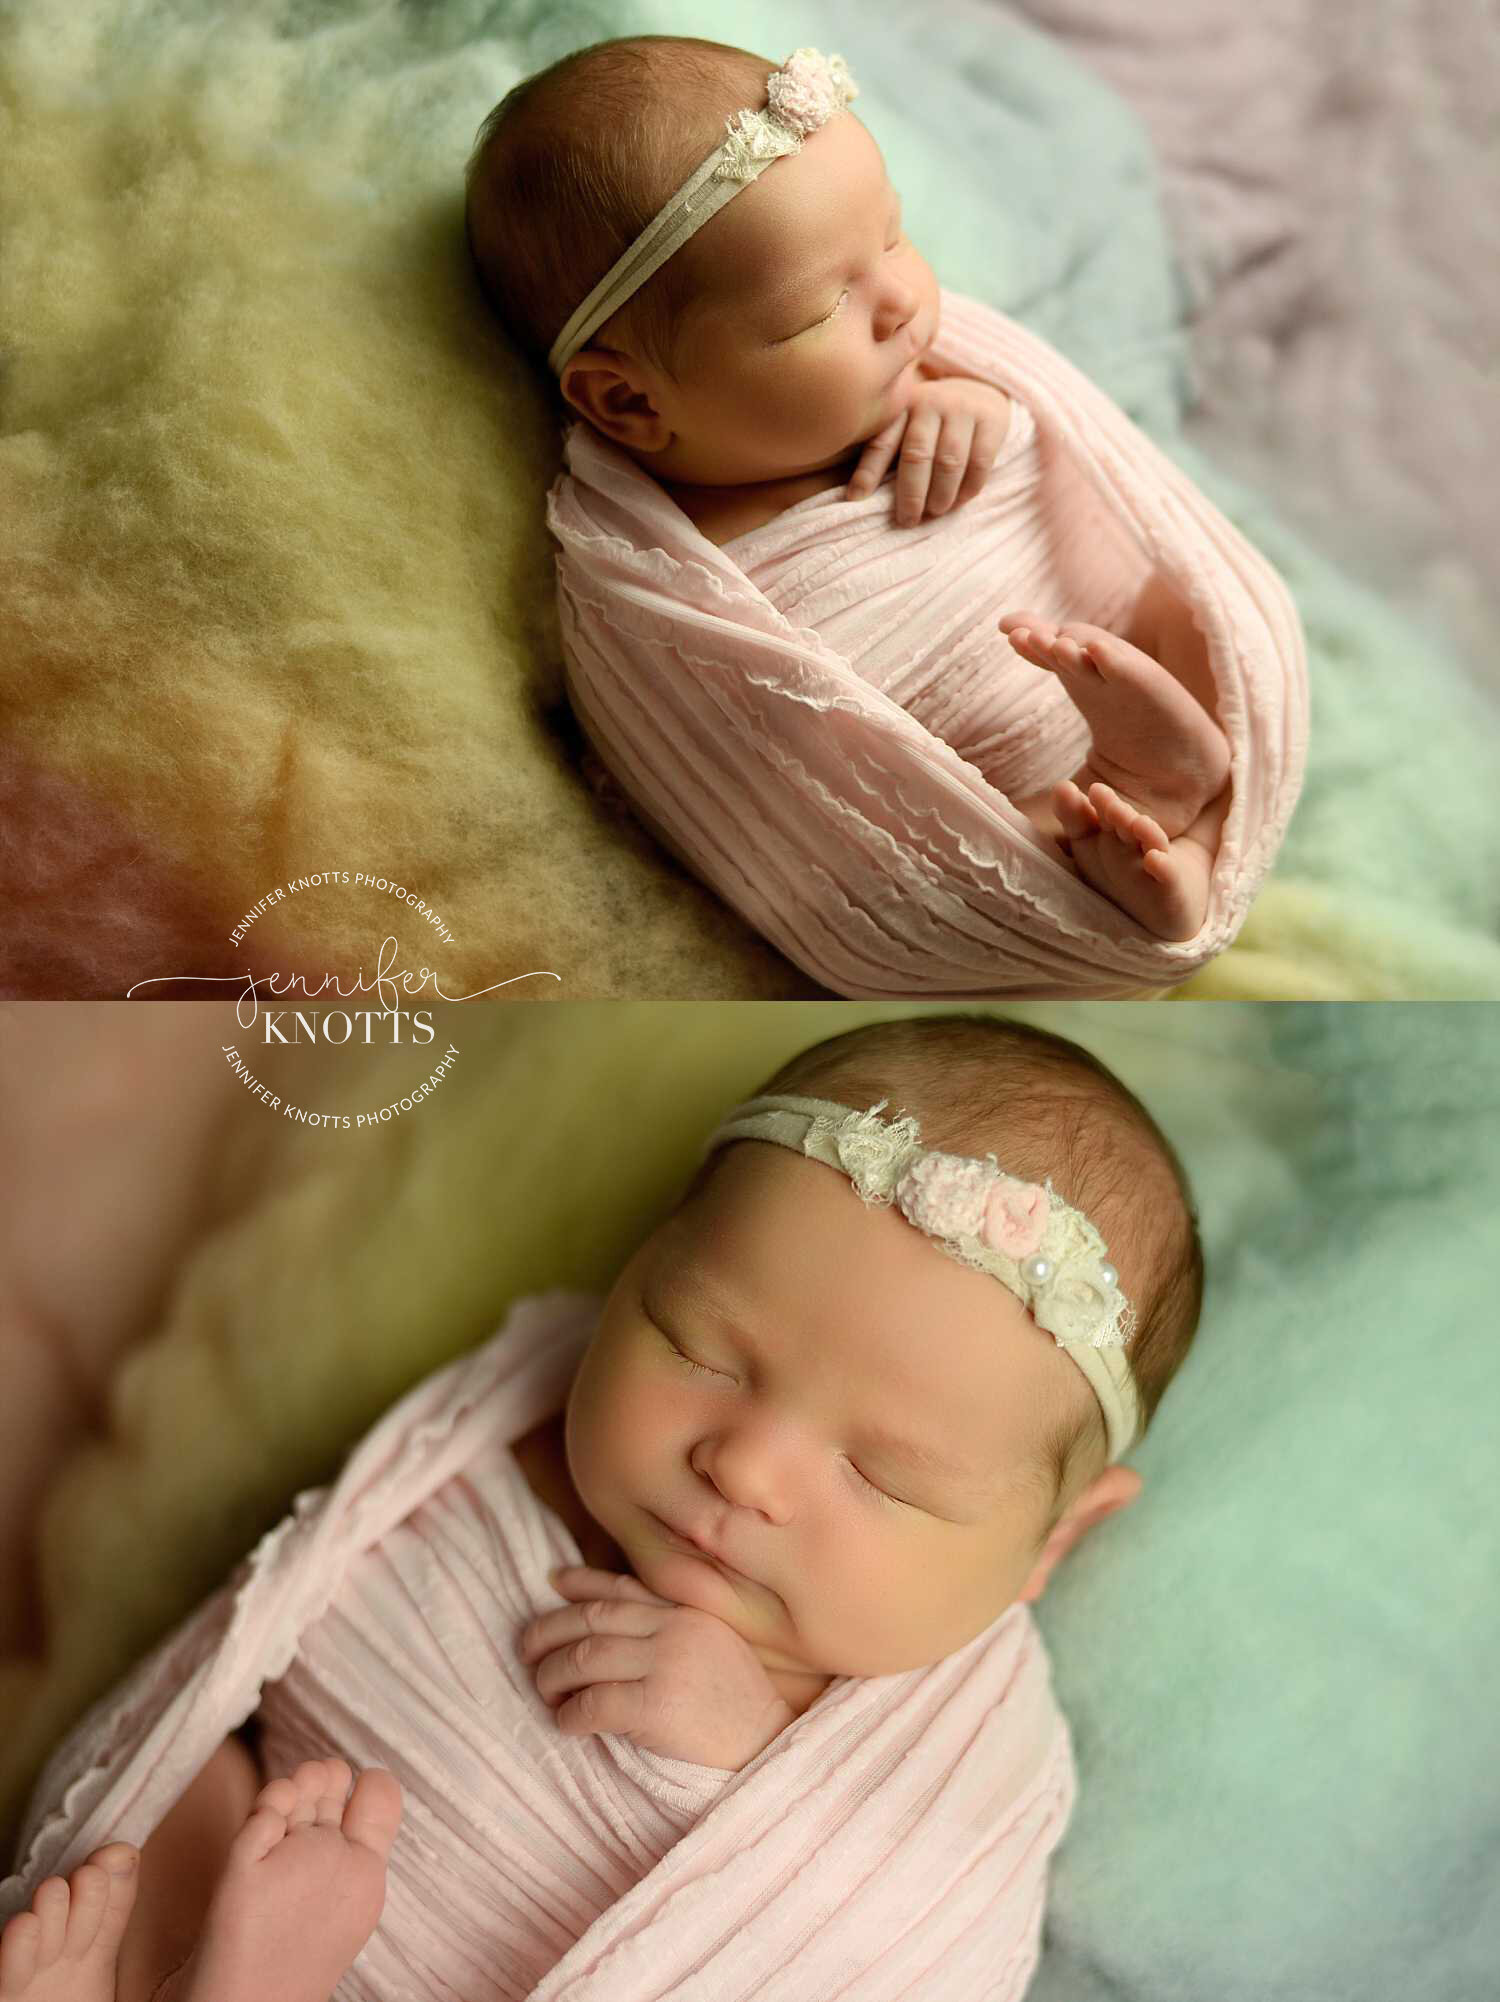 wilmington newborn photographer captures baby girl resting on rainbow colors